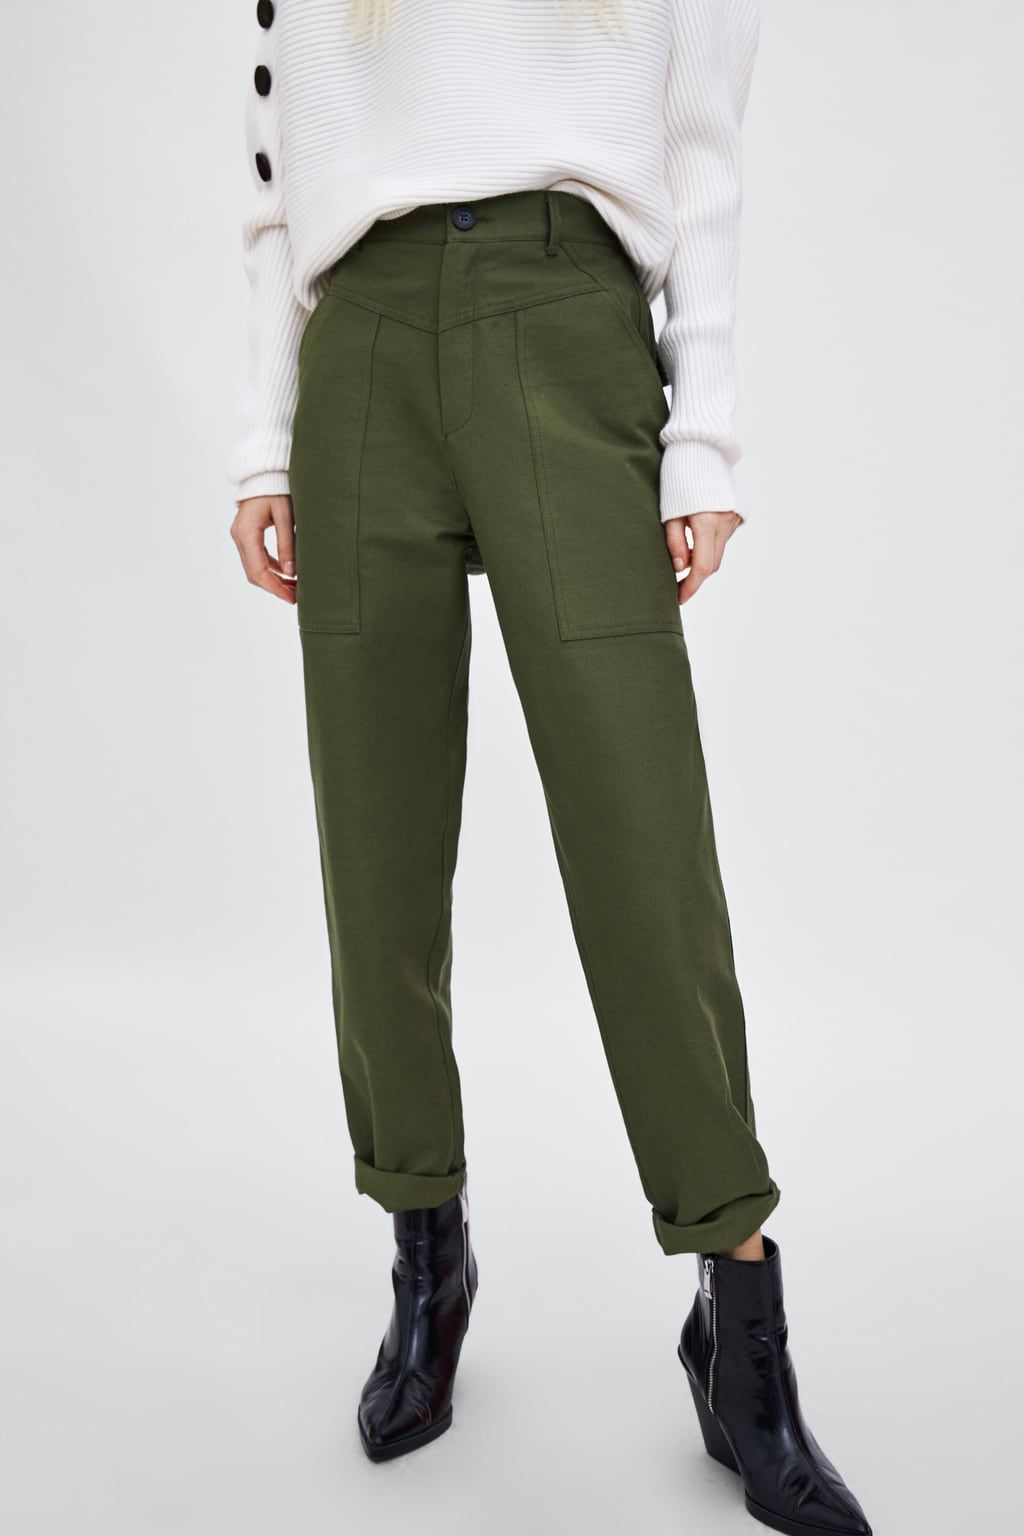 985792265f7 Image 4 of CARGO PANTS from Zara | fashion in 2019 | Fashion, Cargo ...